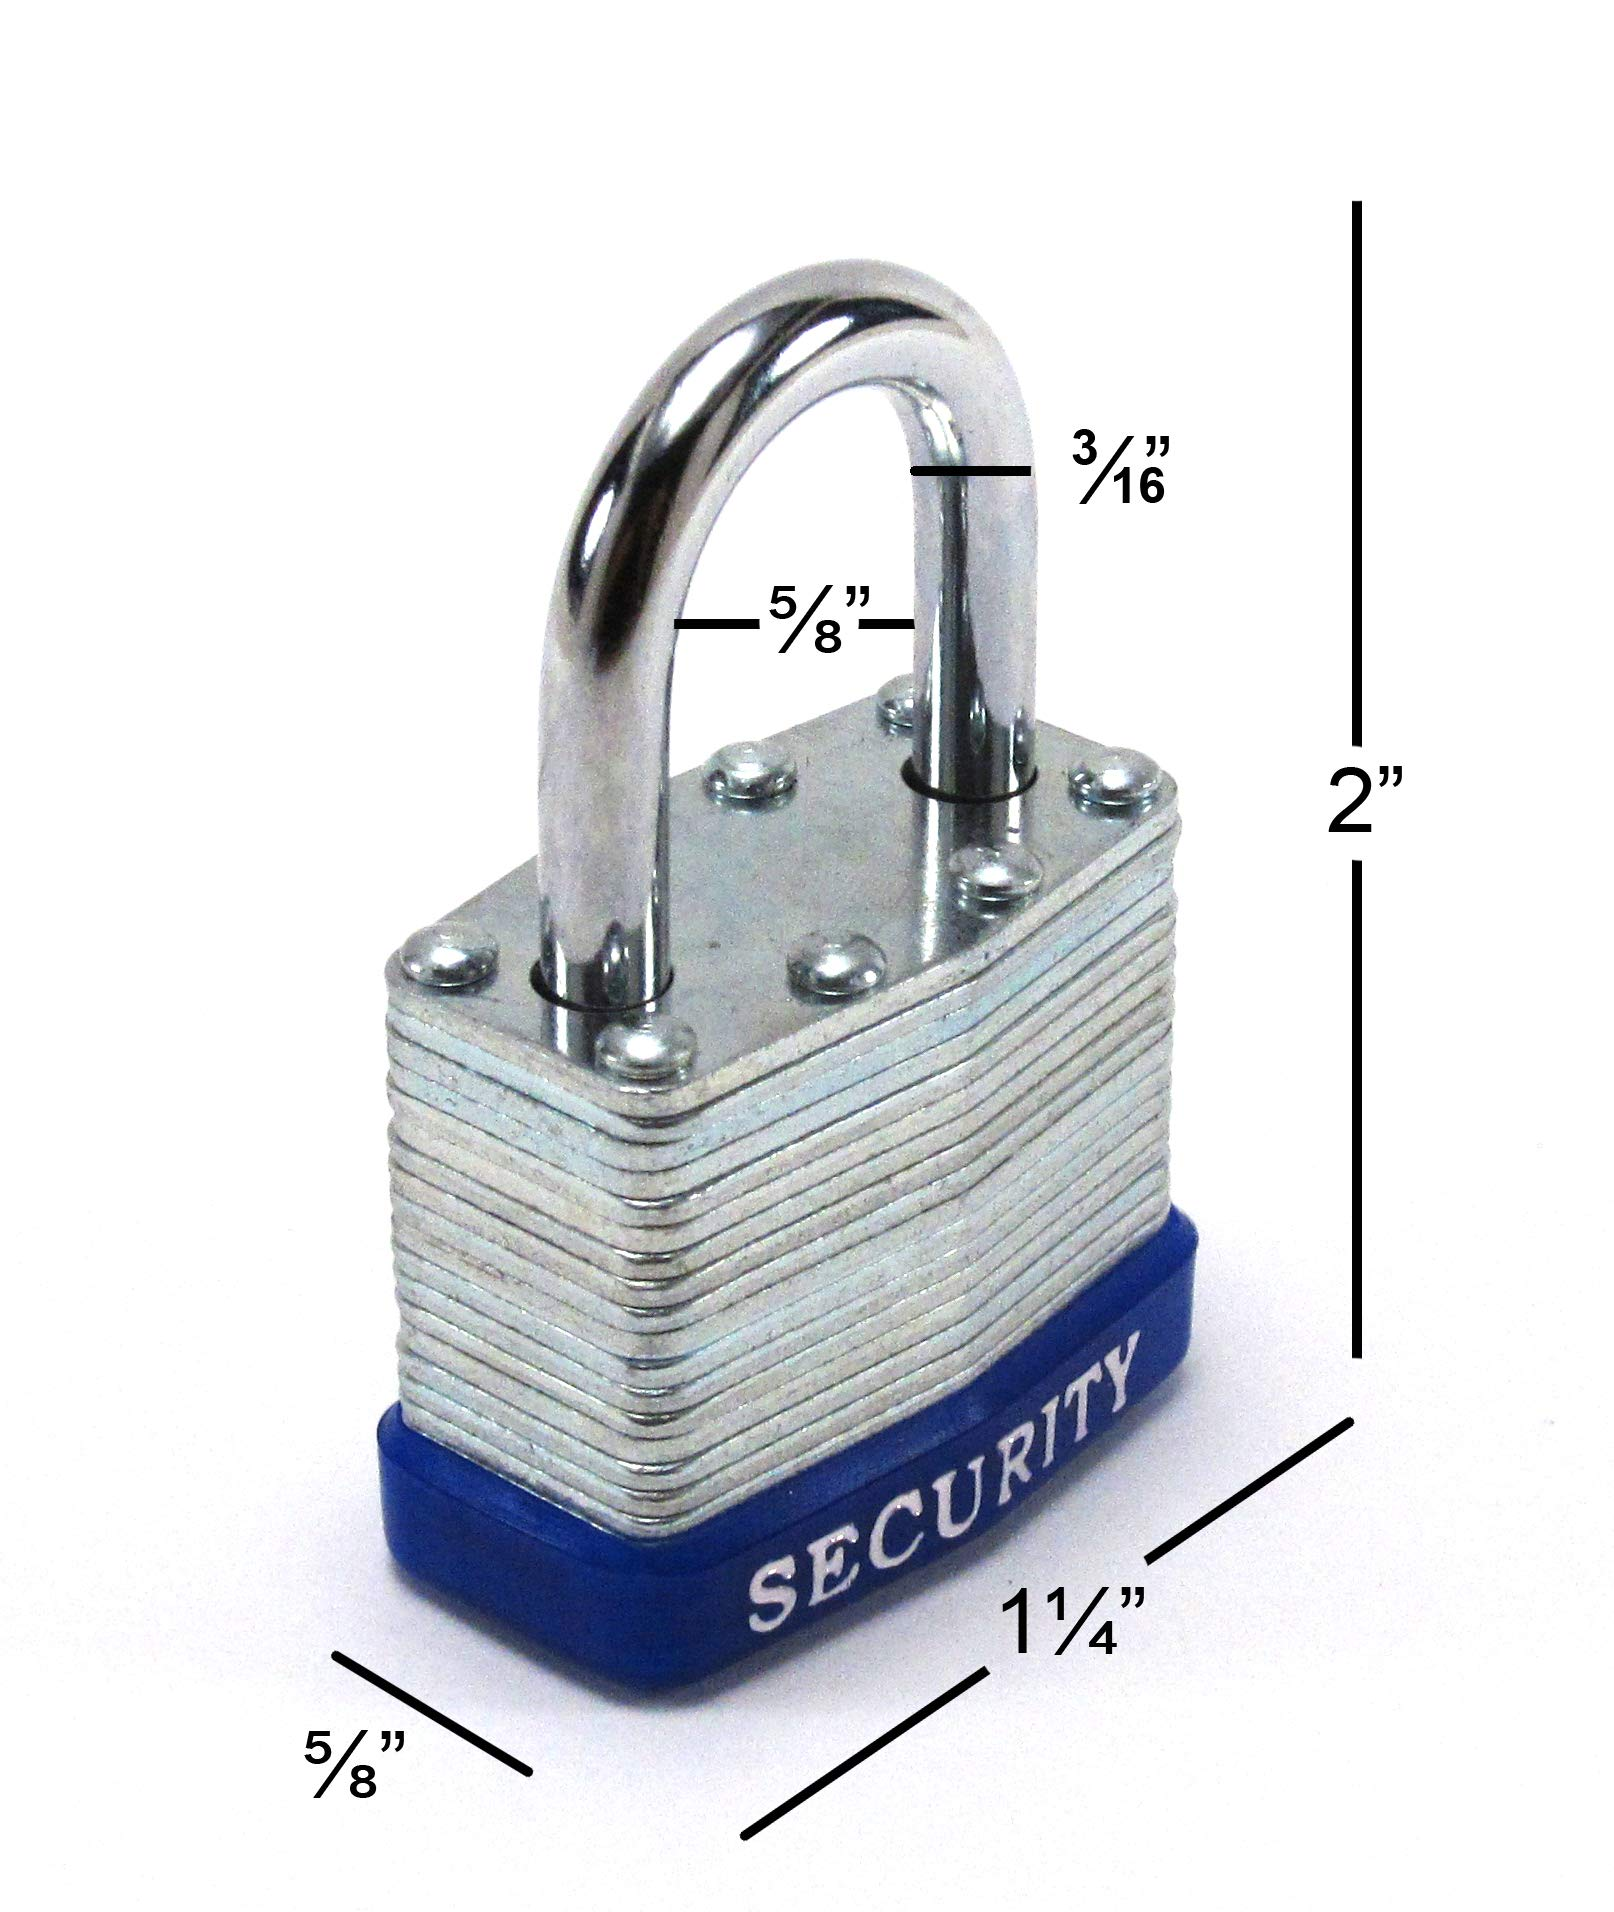 Elitexion Heavy Duty Laminated Steel Padlock, Commercial Grade Keyed Alike 1-Inch (Pack of 12) by Elitexion (Image #3)